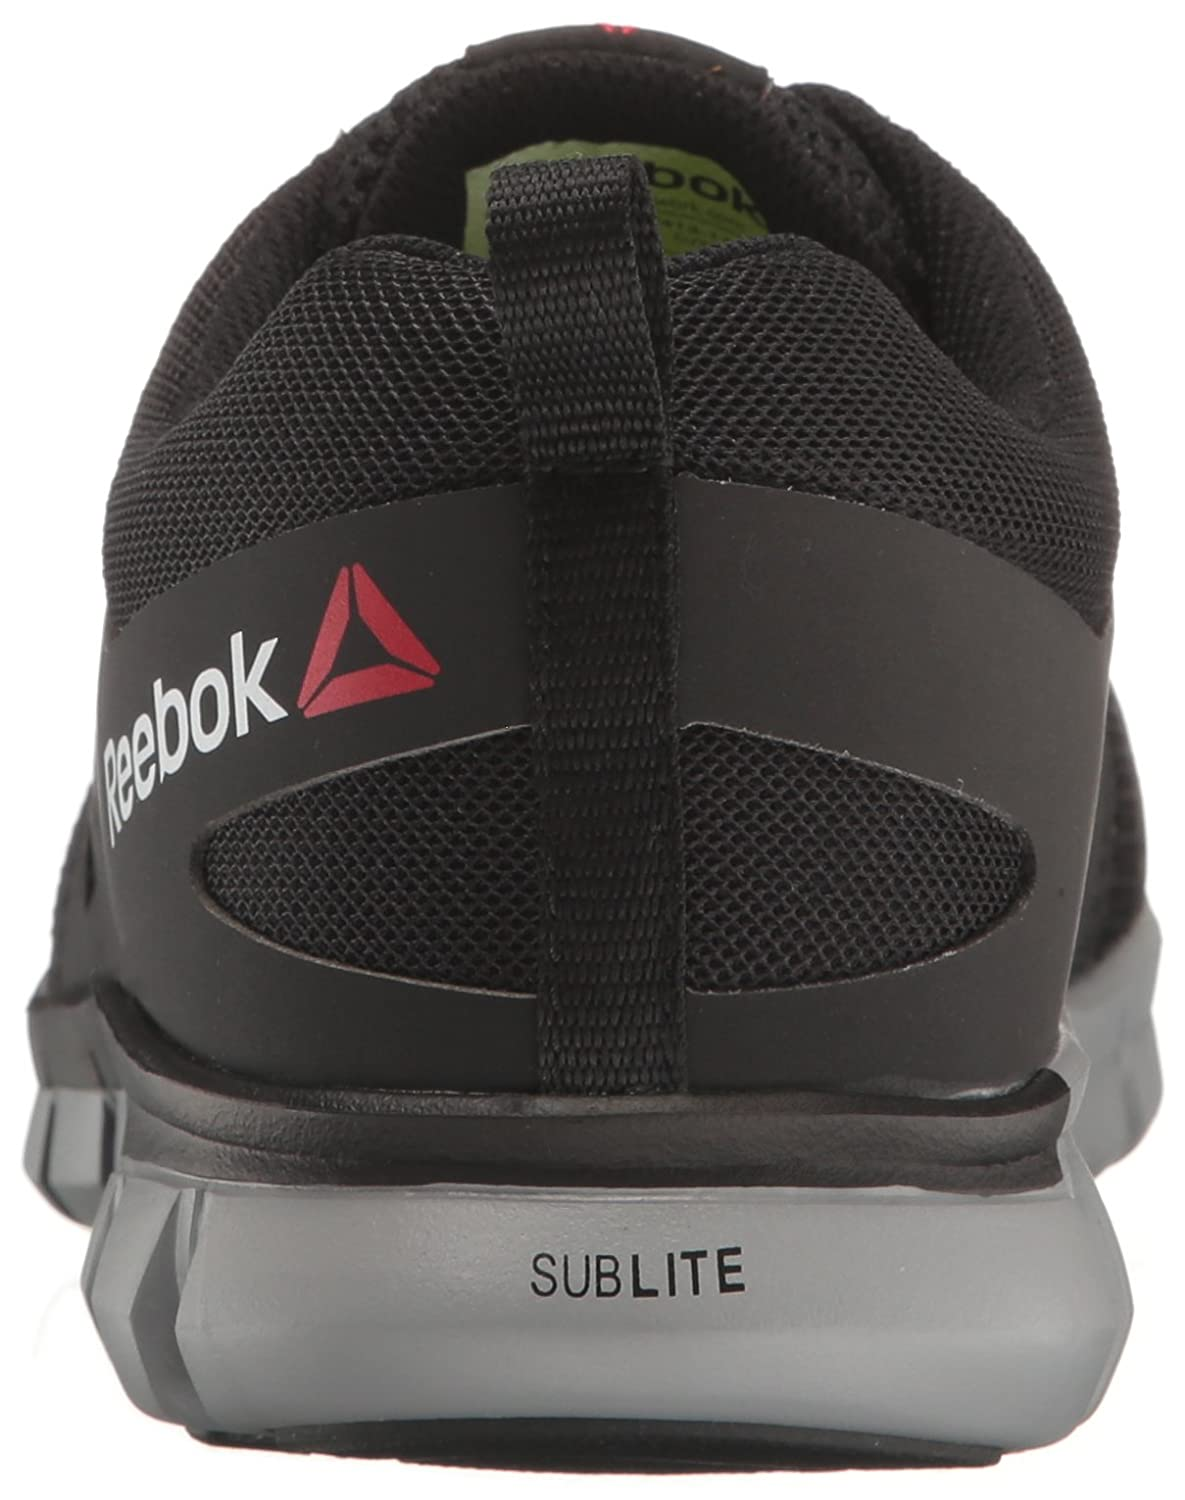 Reebok Work Men's Sublite Cushion Work Rb4041 Industrial & Construction Shoe